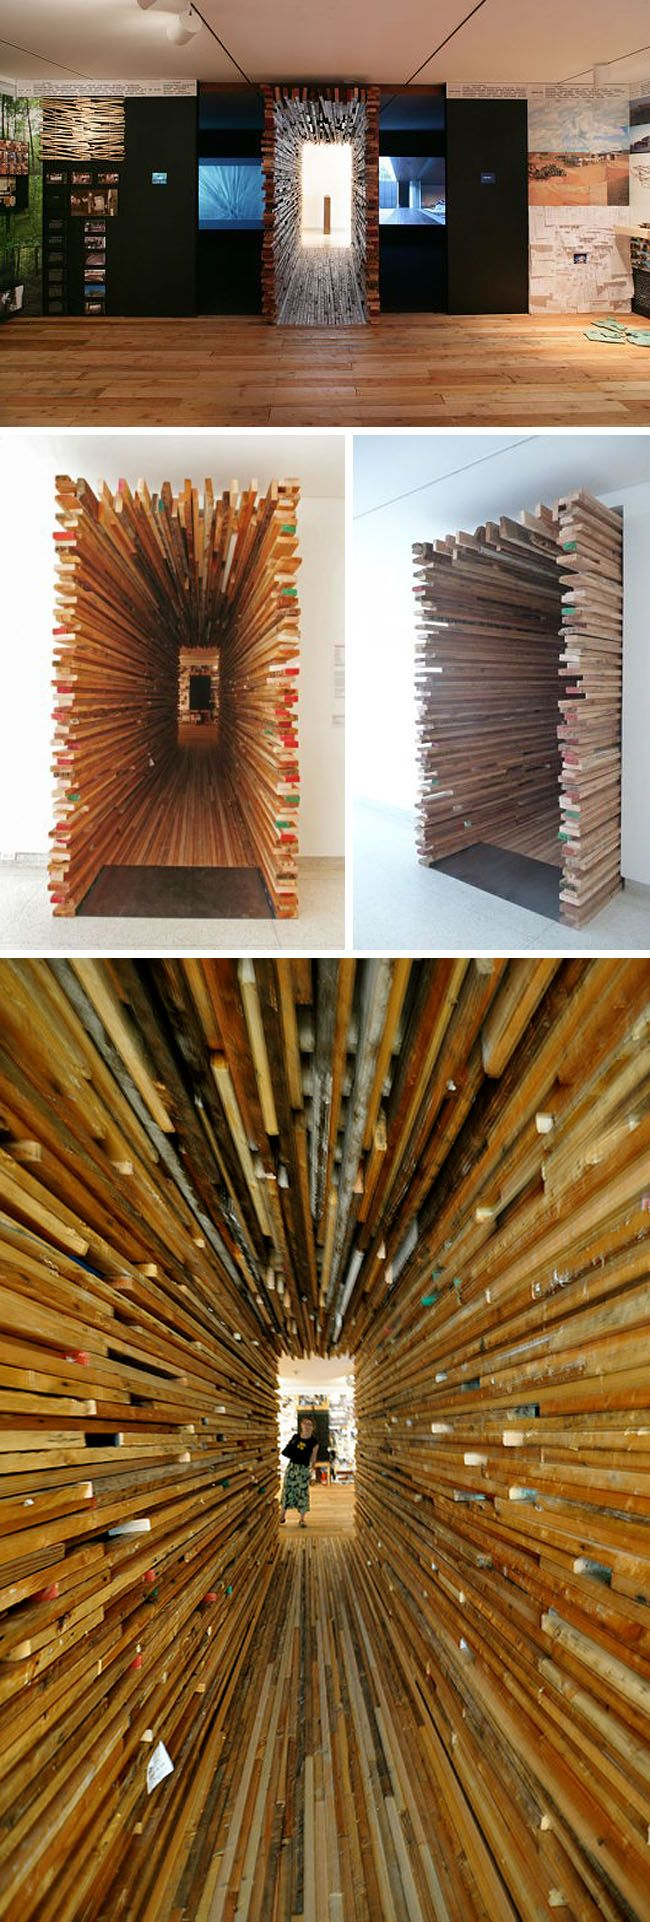 Interesting artistic passageway by Sebastian-Mariscal. MCASD installation multi collabcubed.